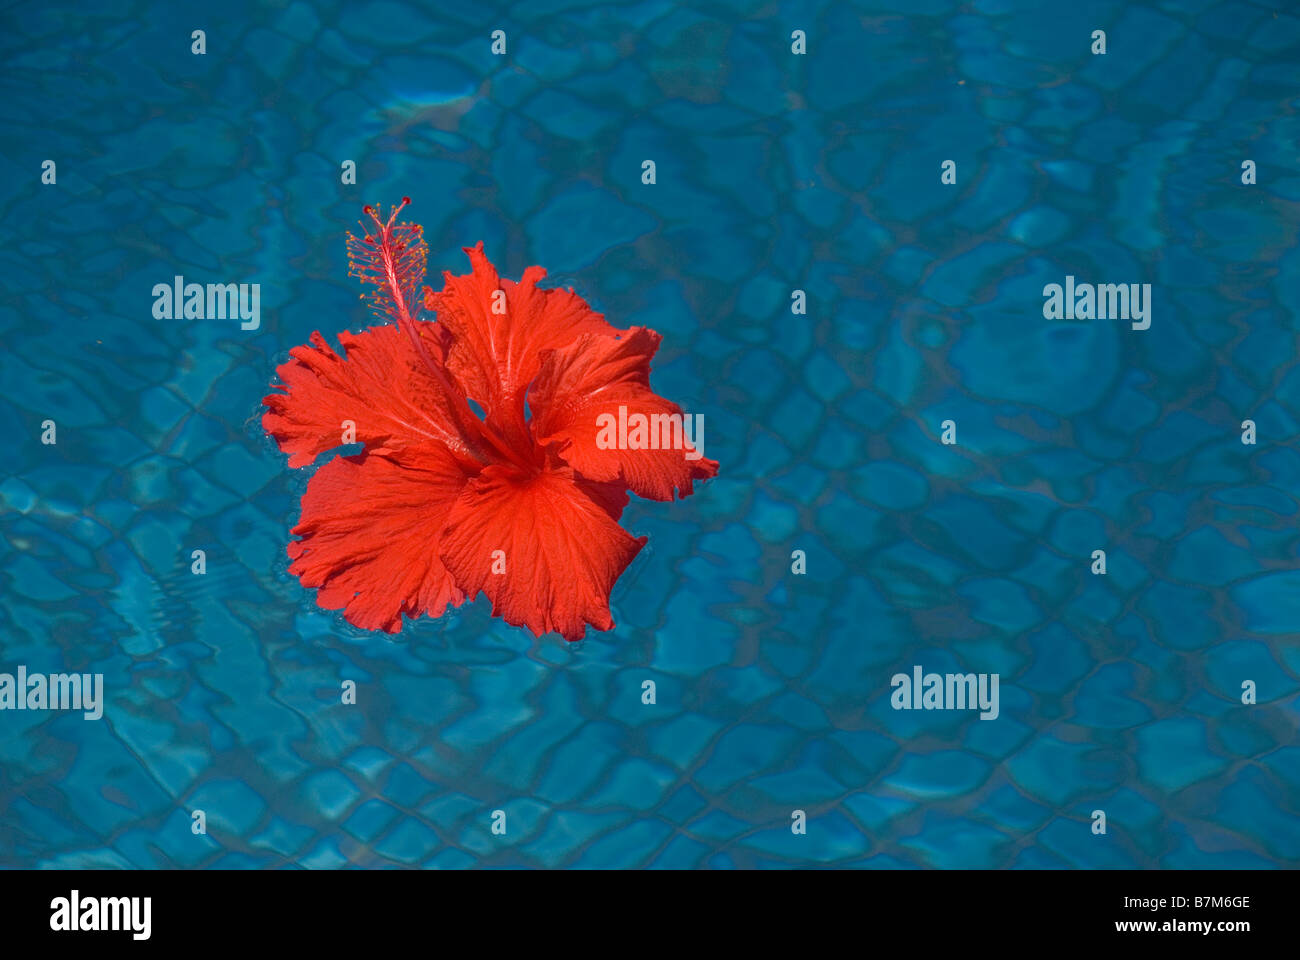 Red hibiscus flower in blue swimming pool stock photo 21957166 alamy red hibiscus flower in blue swimming pool izmirmasajfo